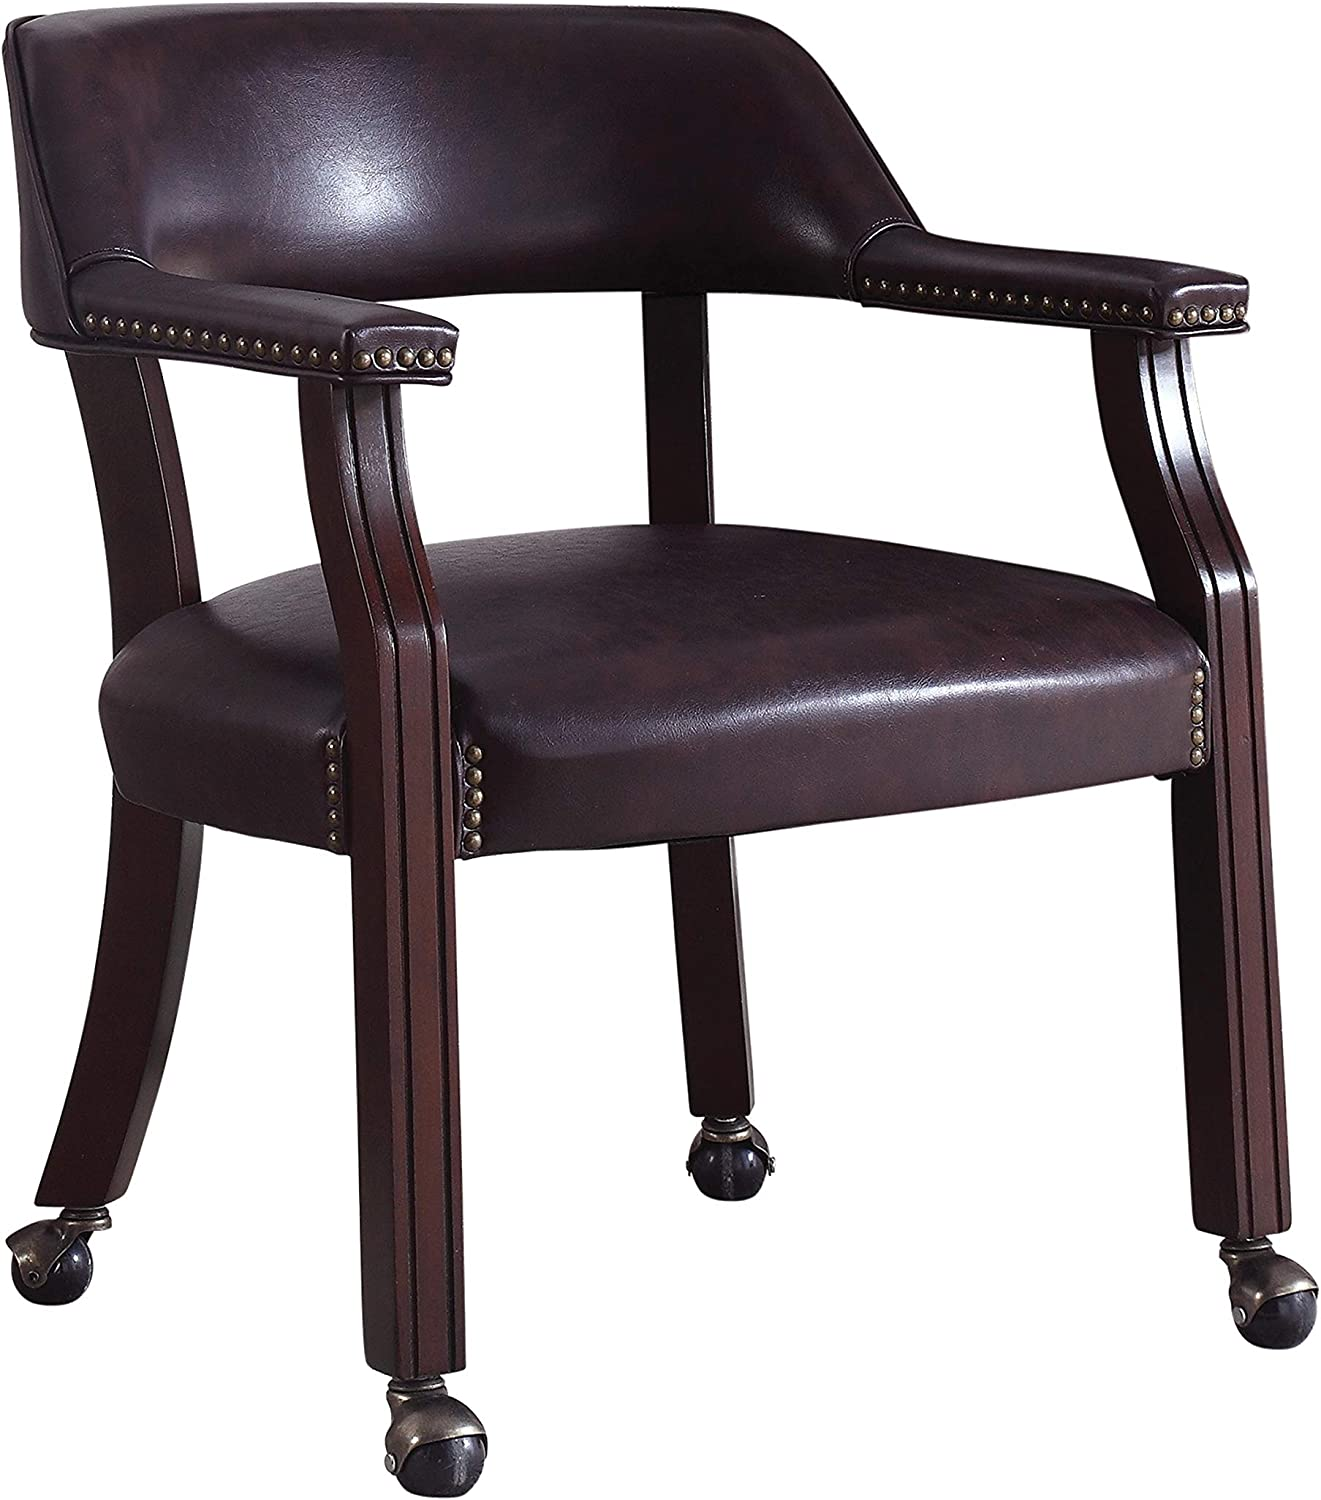 Coaster 417BRN-CO Furniture Leatherette Office Chair, Chestnut